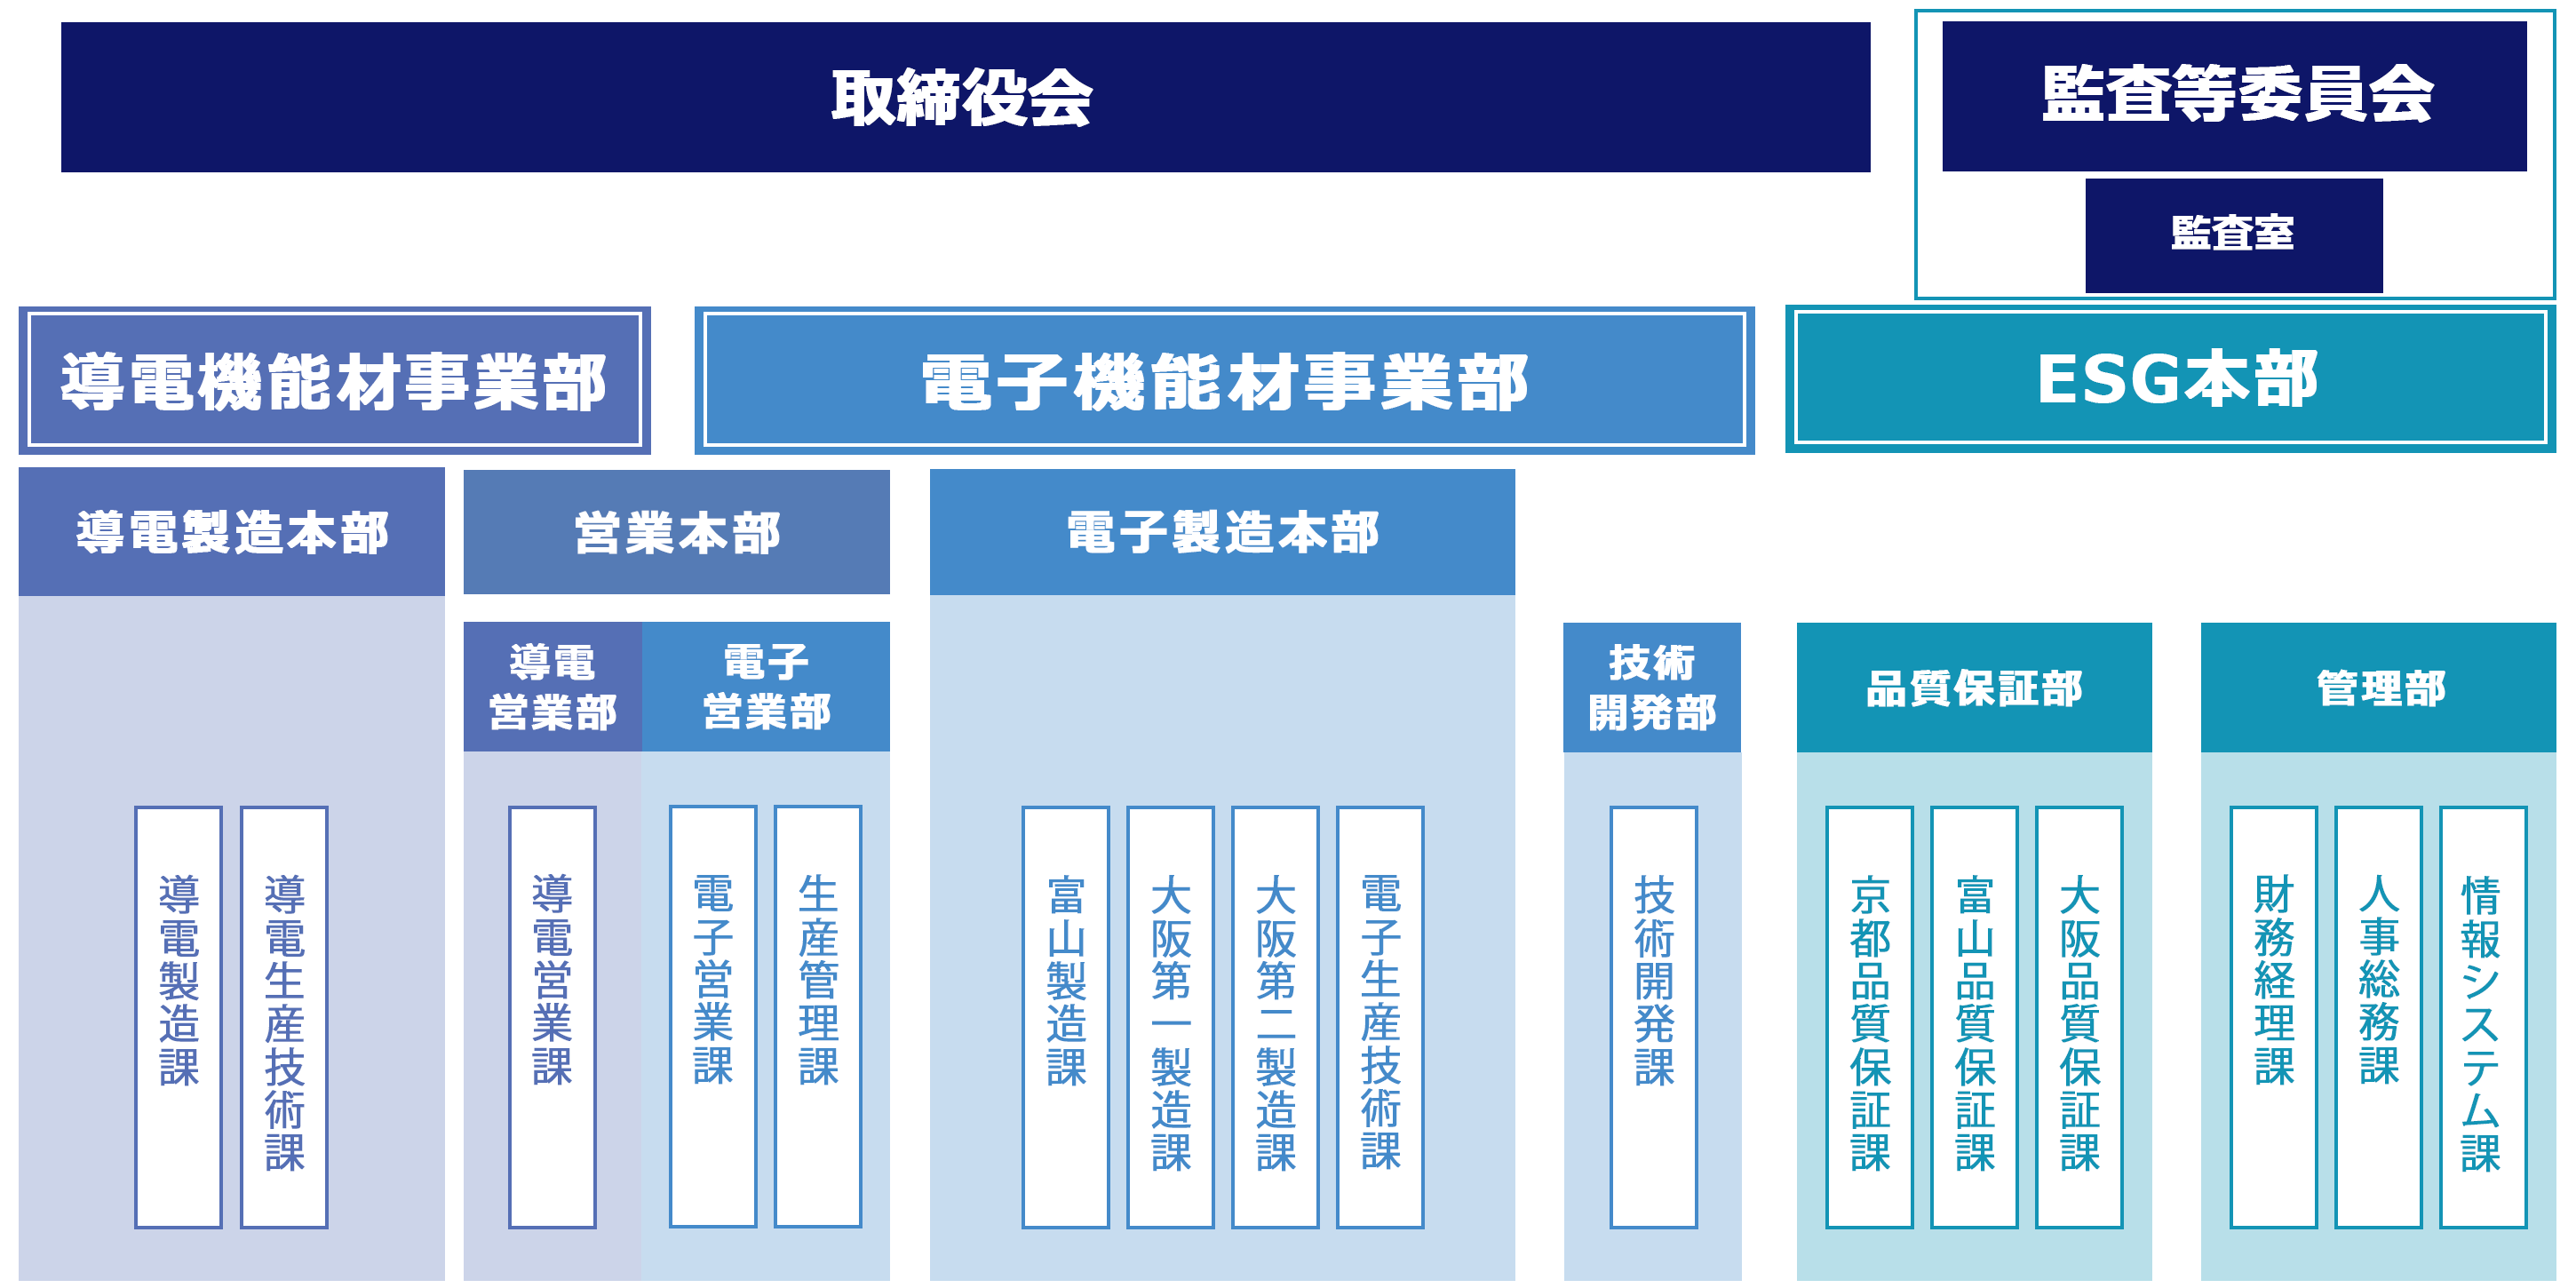 Image with FCM Corporation's organization chart